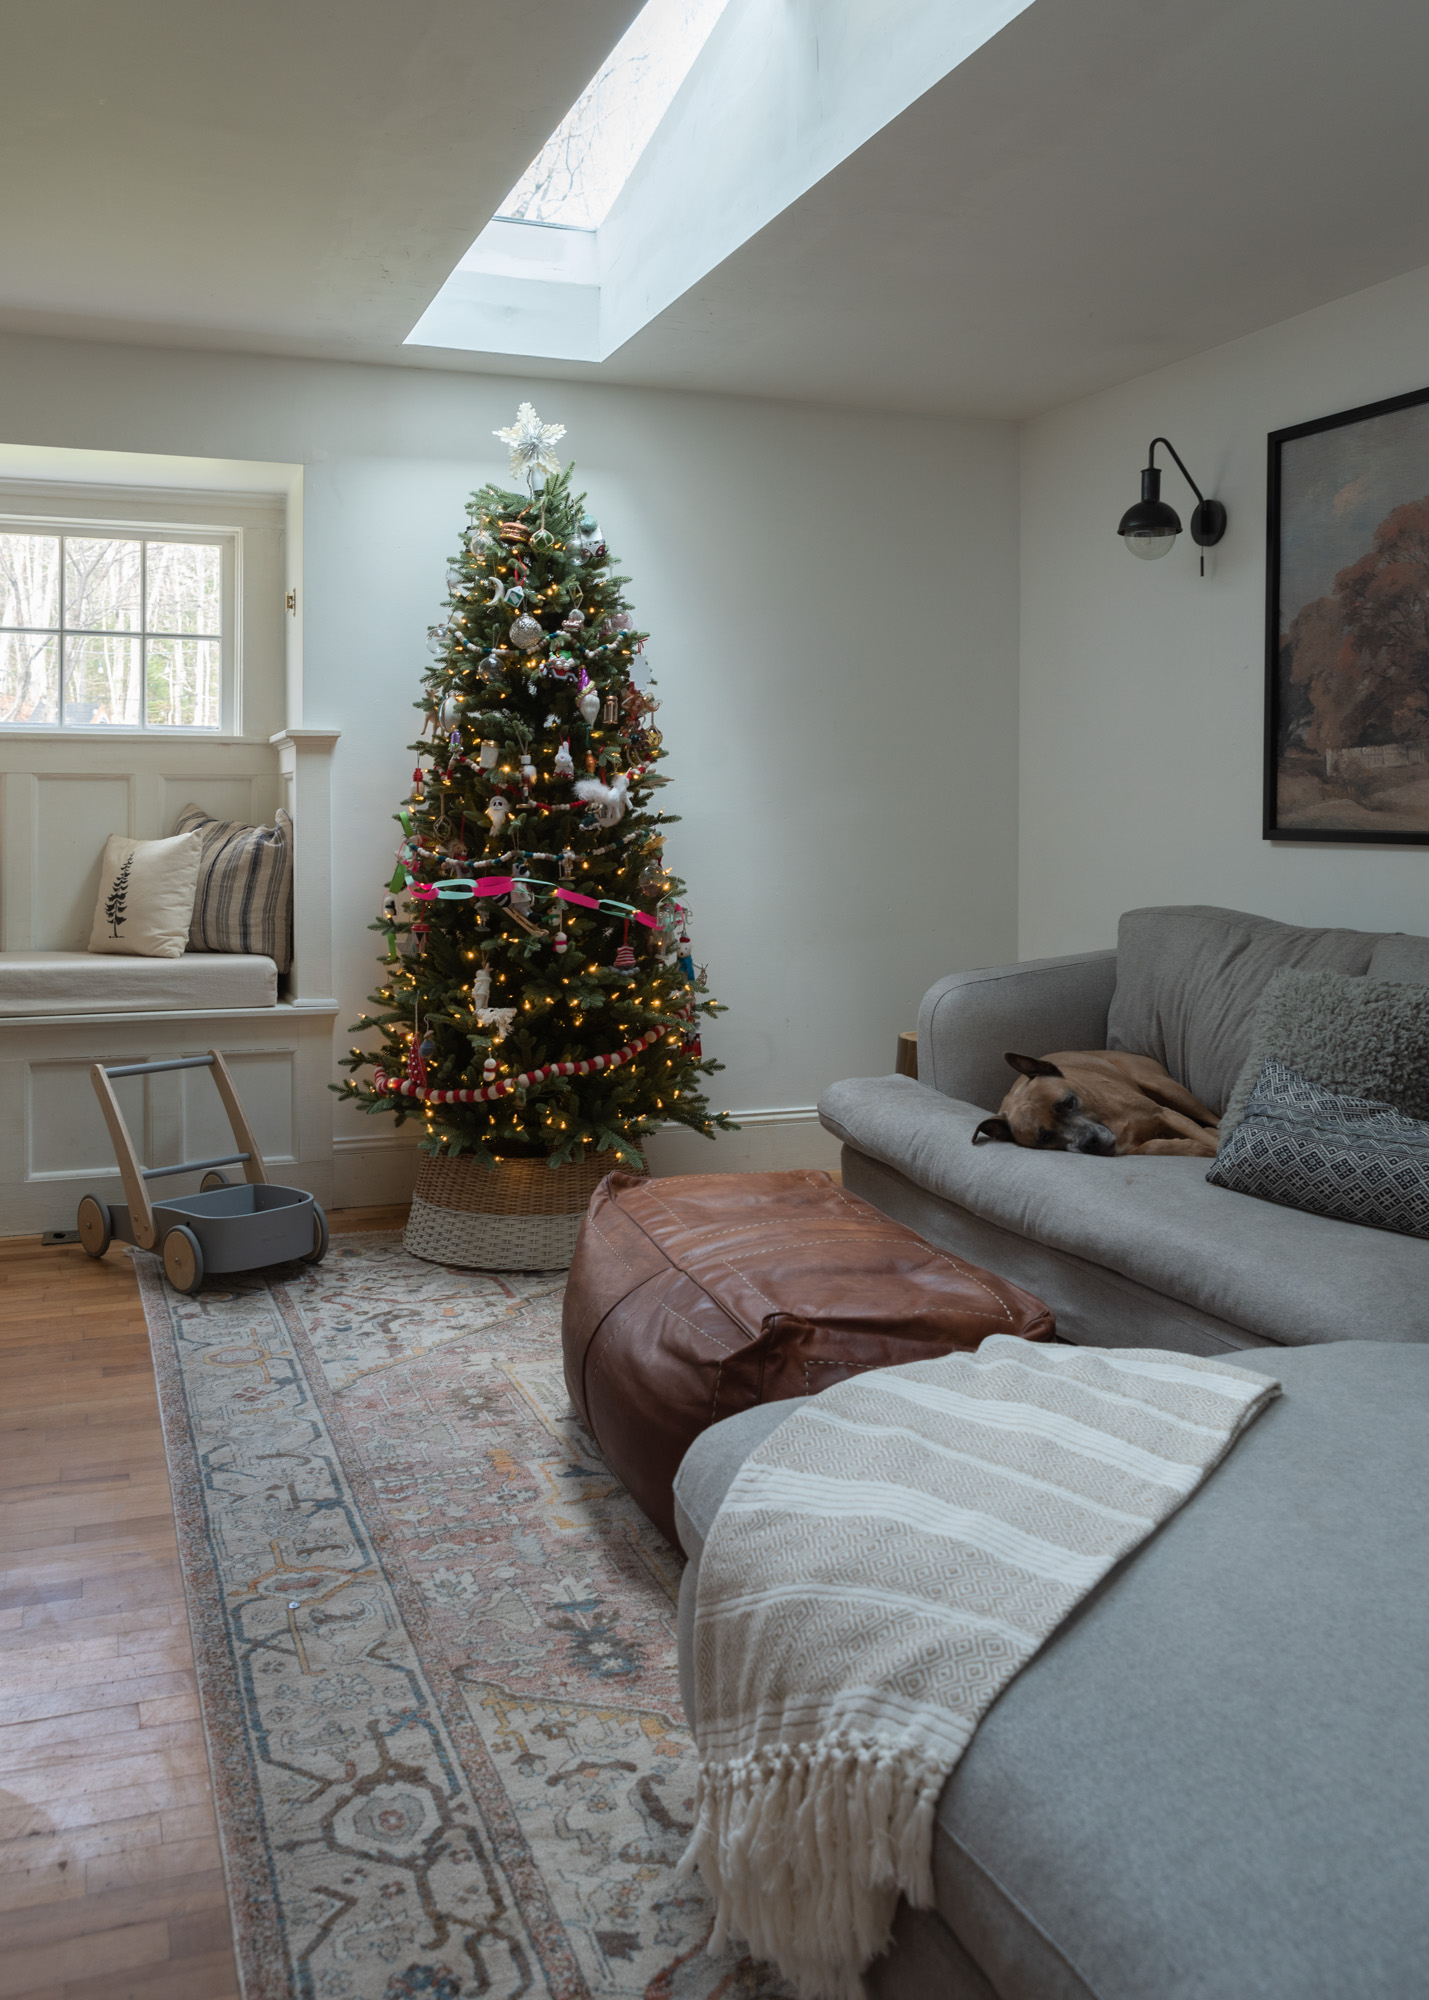 The Wild decoelis | 2020 Holiday Home Tour | Family room christmas tree with collection of ornaments and paper chain, heather gray sectional Rugs USA medallion rug leather pouf ottoman window seat and skylights